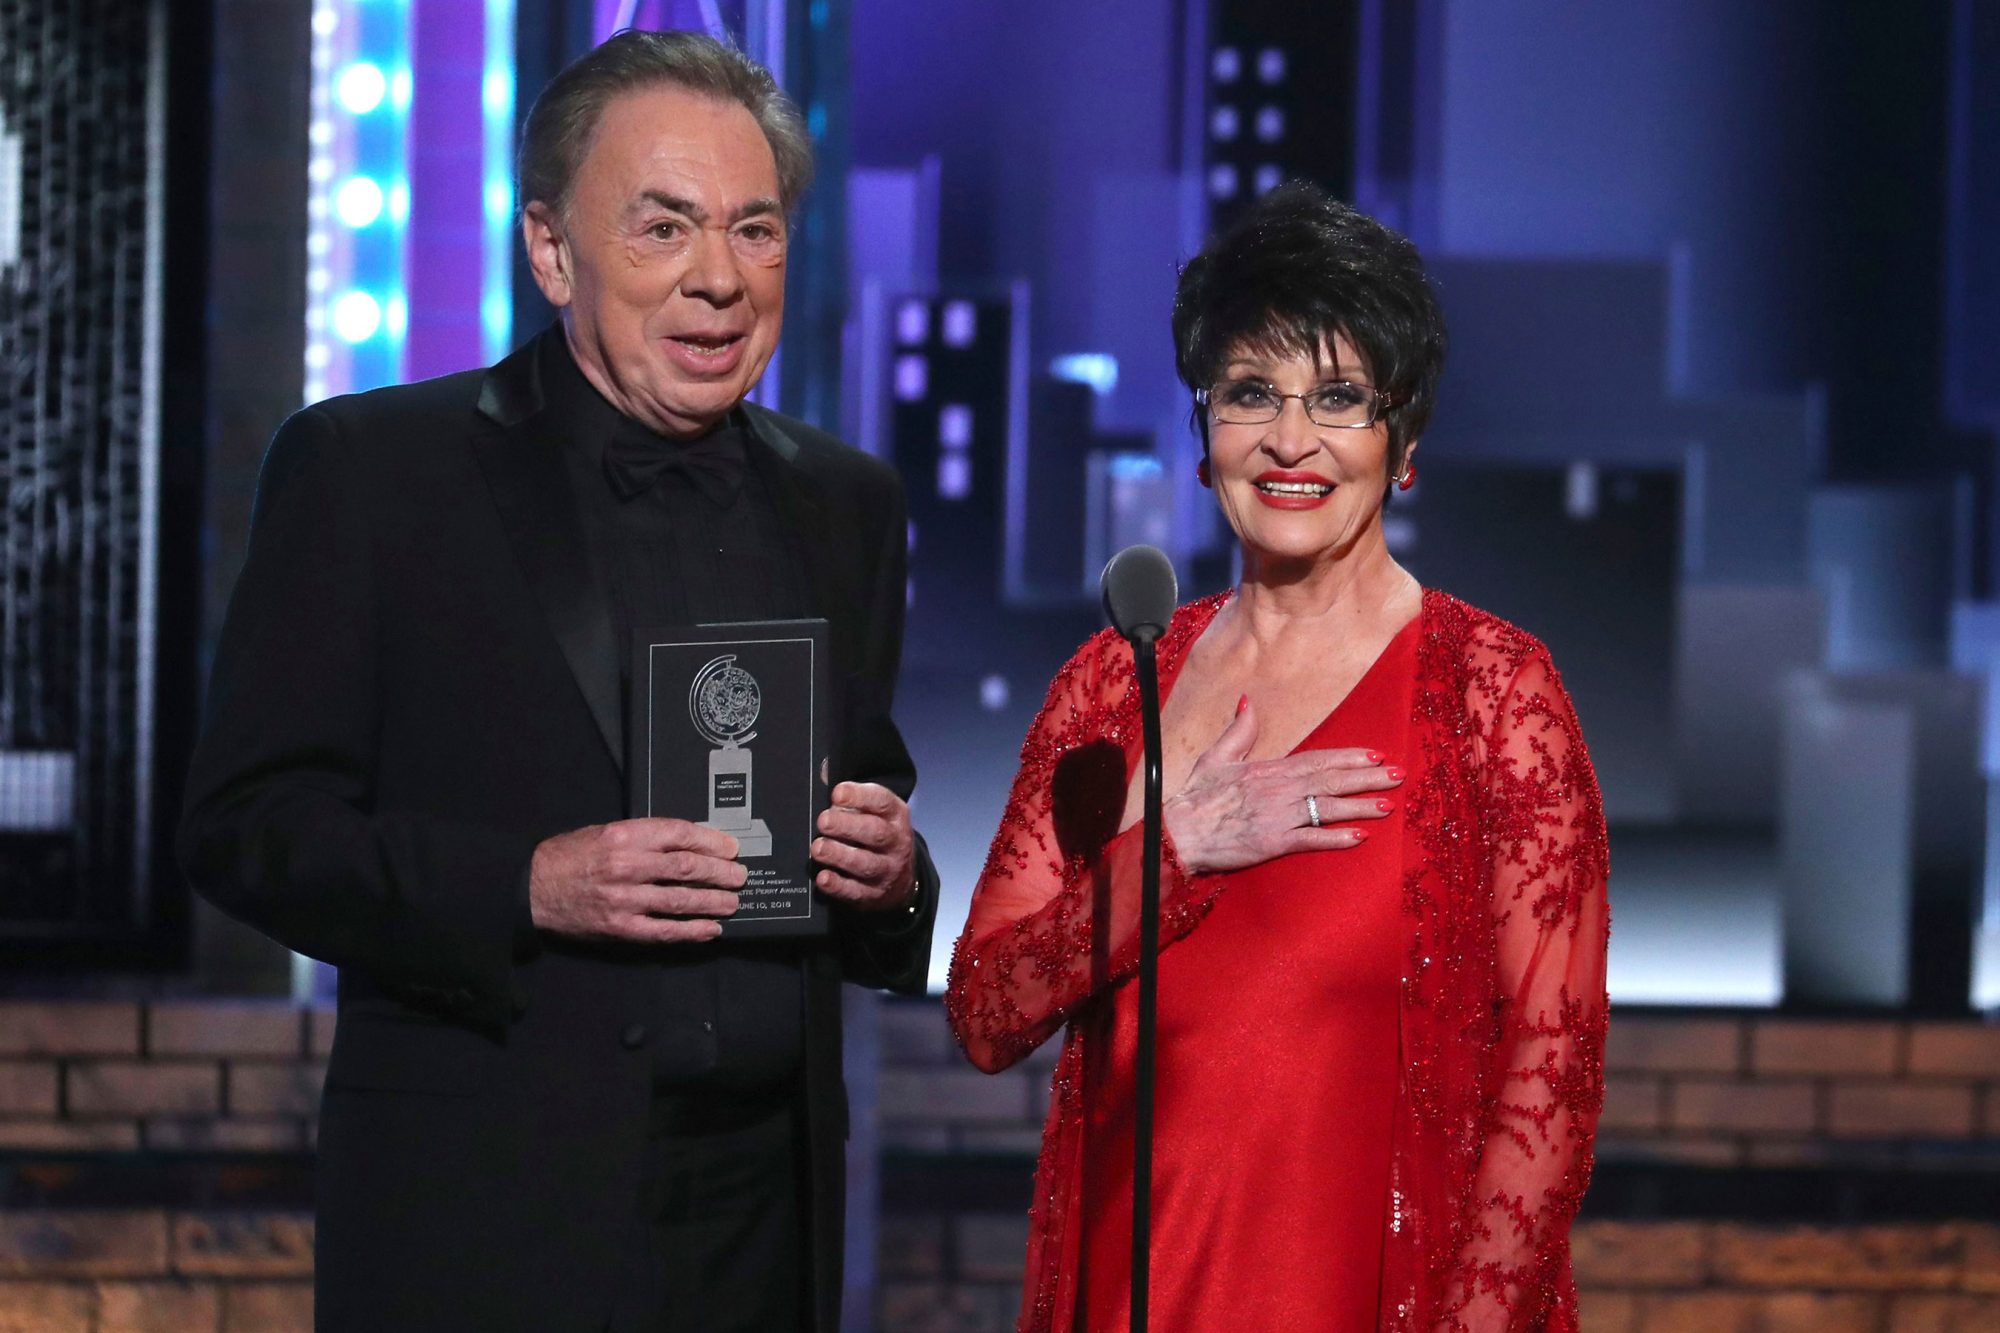 The Andrew Lloyd Weber and Chita Rivera medley